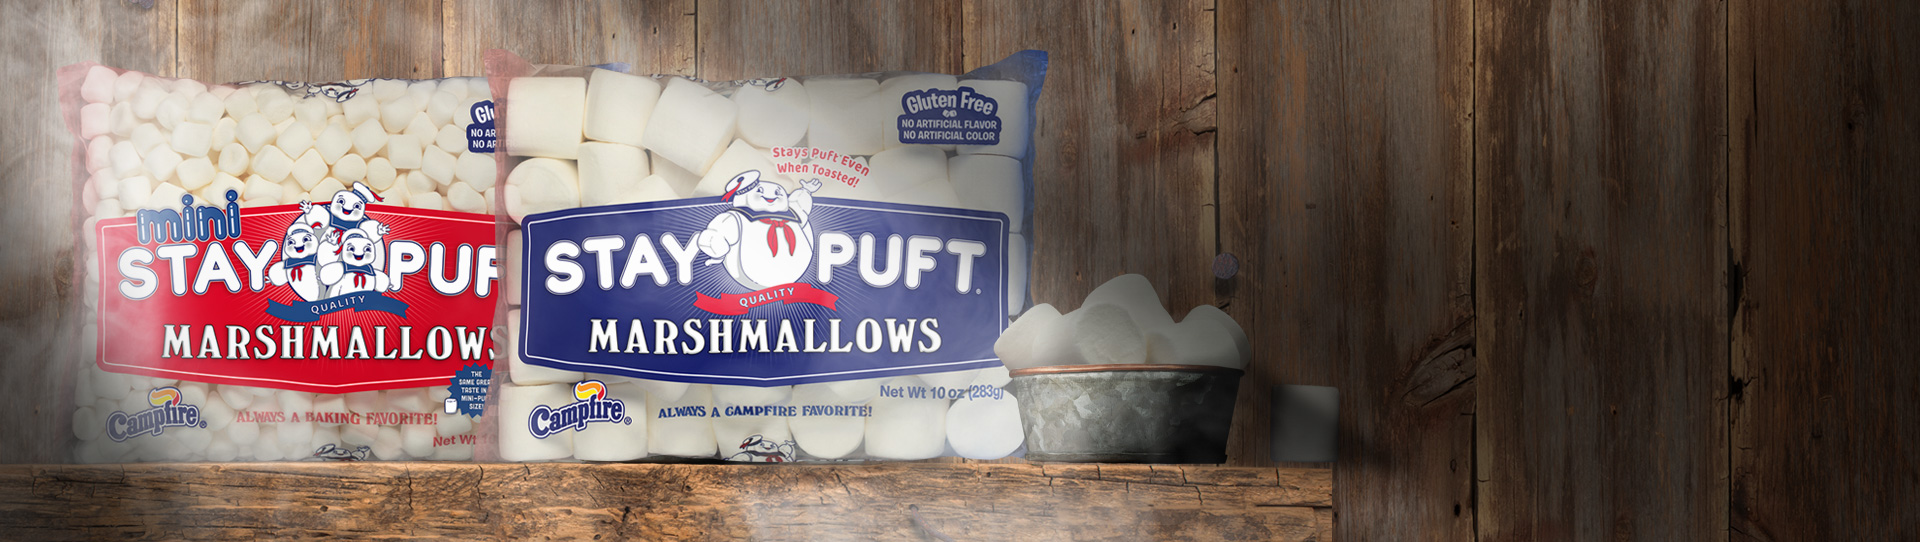 bags of StayPuft marshmallows